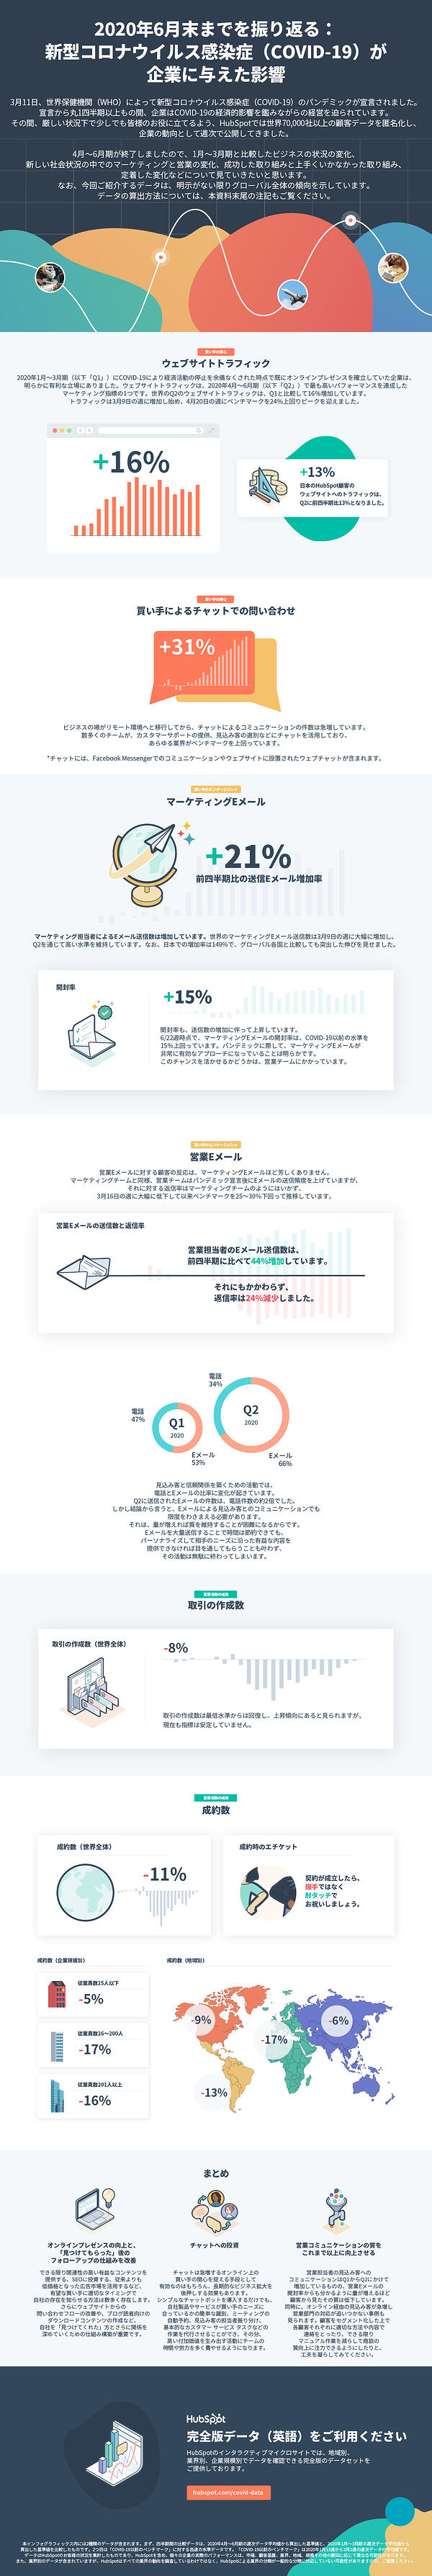 COVID Benchmark Data Infographic_JP_Update_1Page